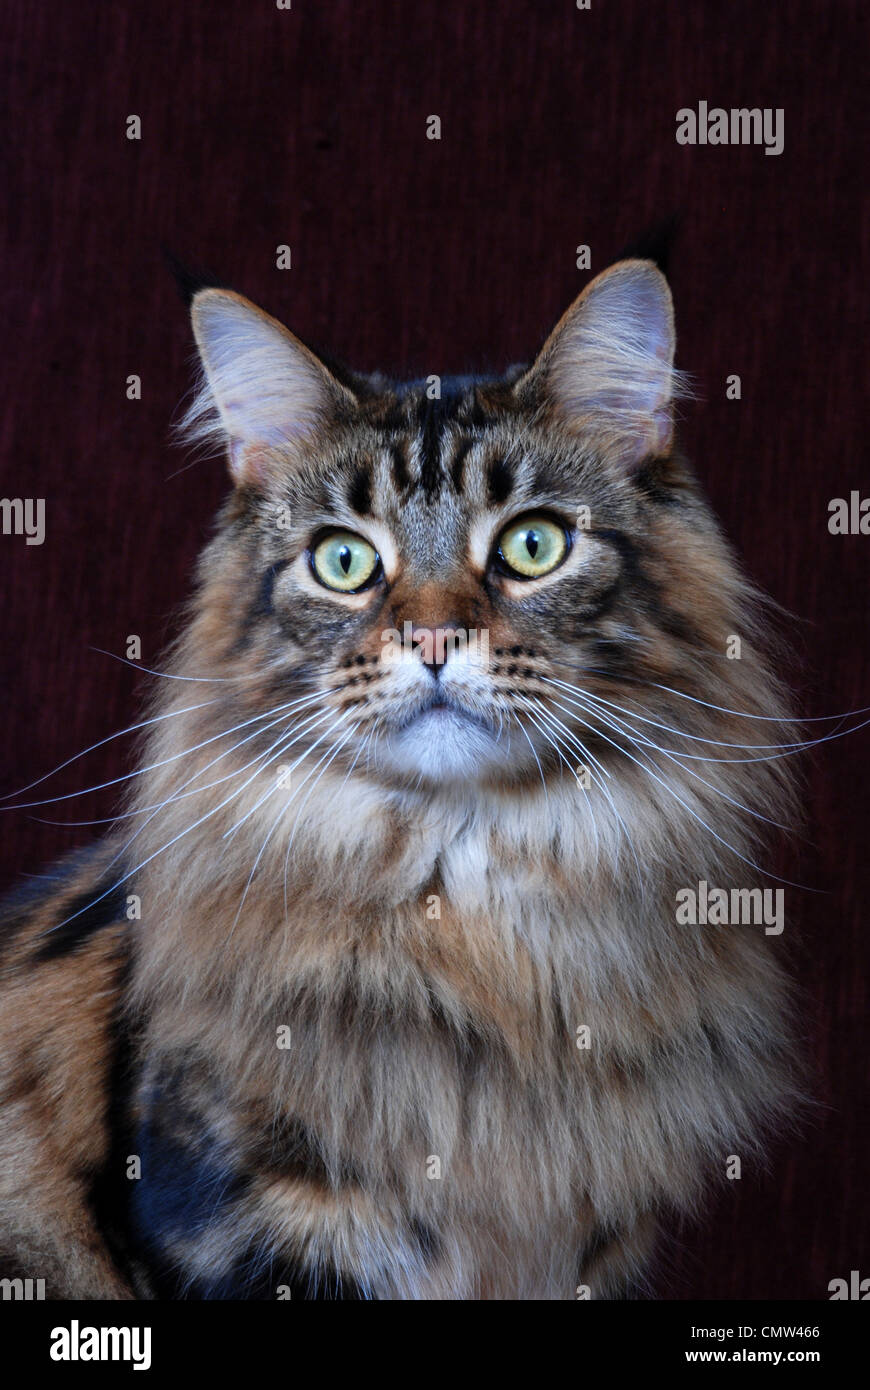 How Long To Maine Coon Cats Live